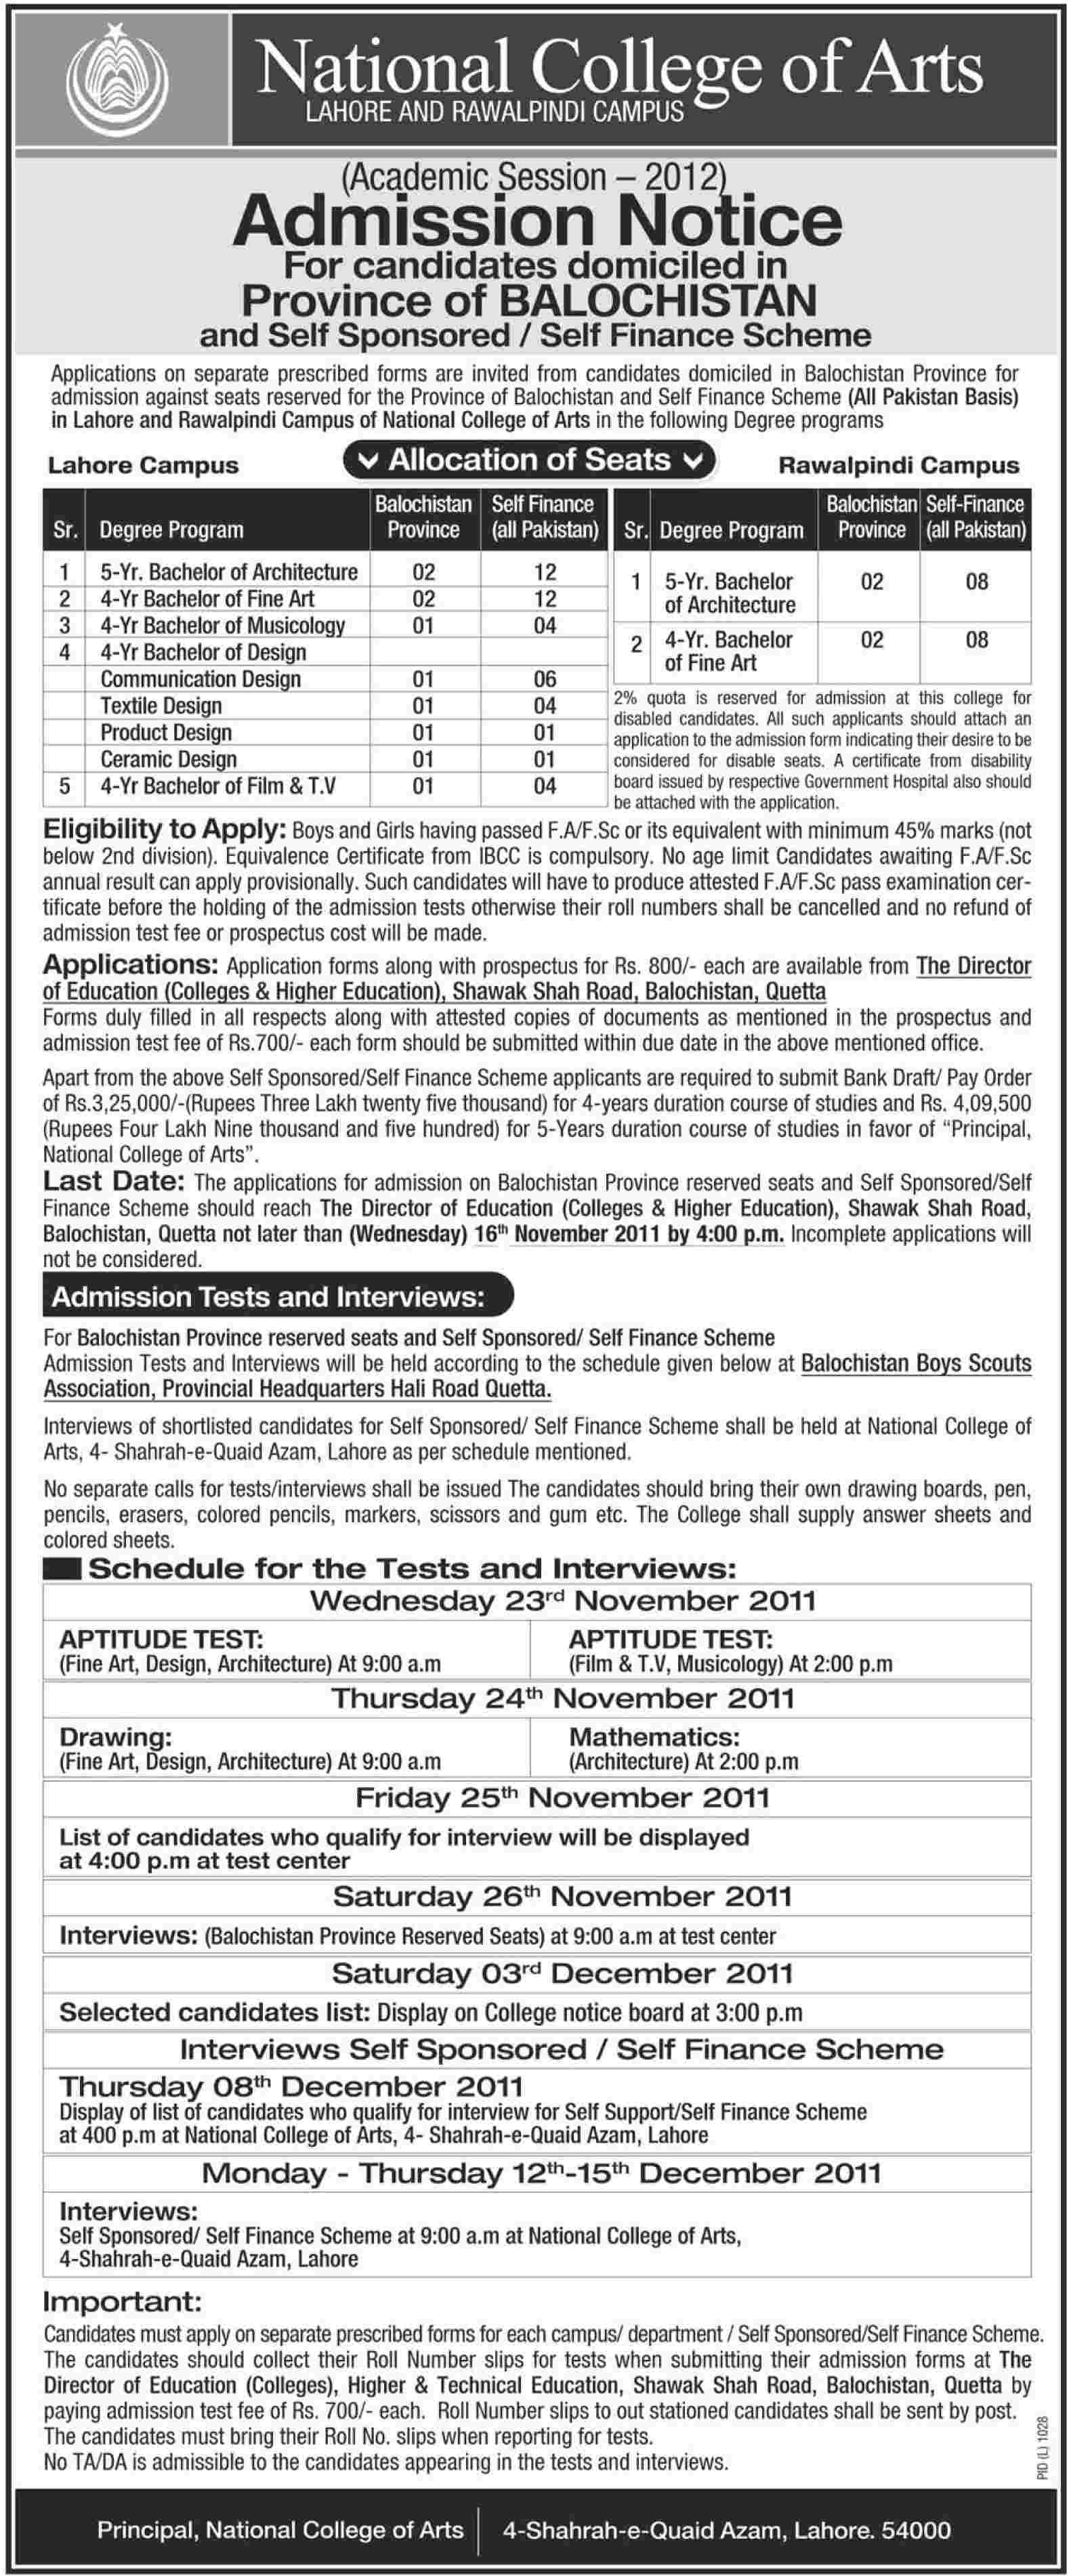 National College Of Arts Lahore and Rawalpindi Admissions 2011